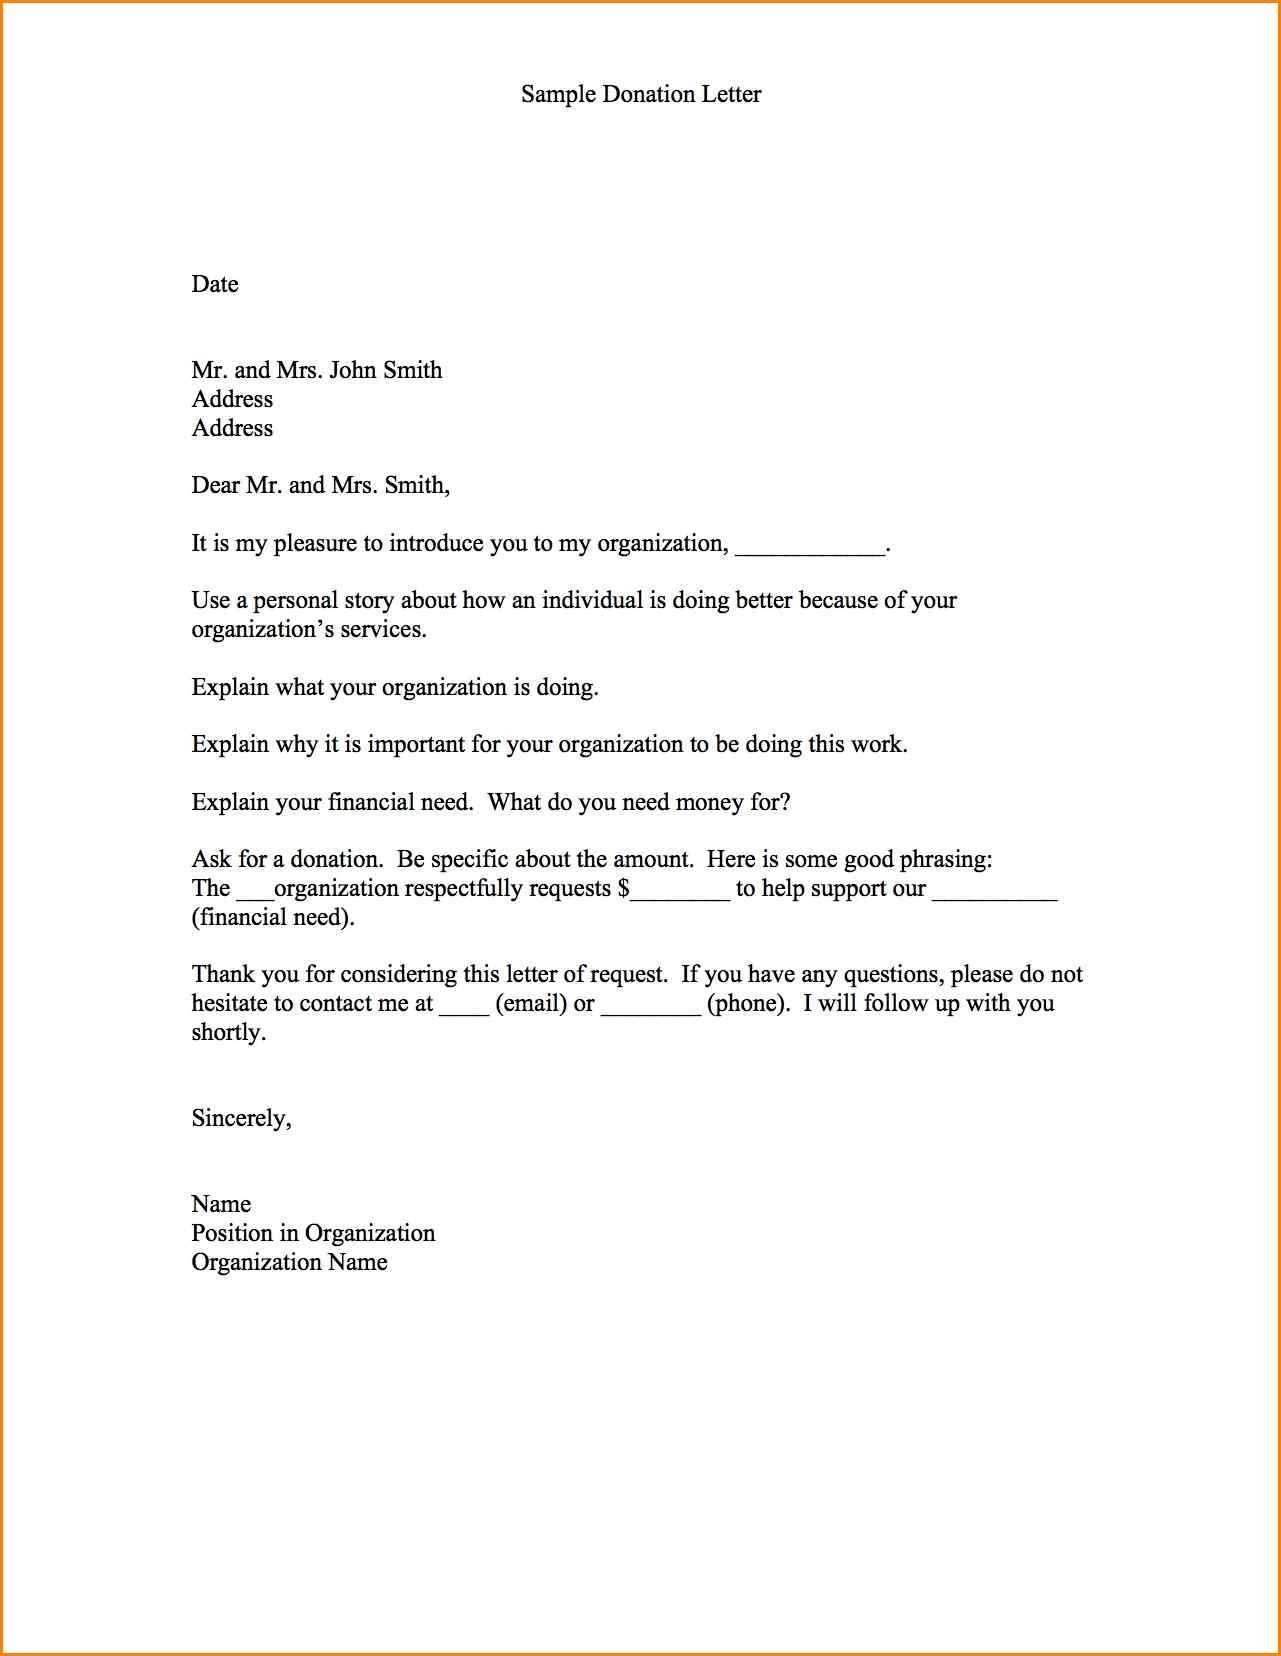 Fundraising Appeal Letter Template - Fundraising Appeal Letter format New 11 Sample Donation Request